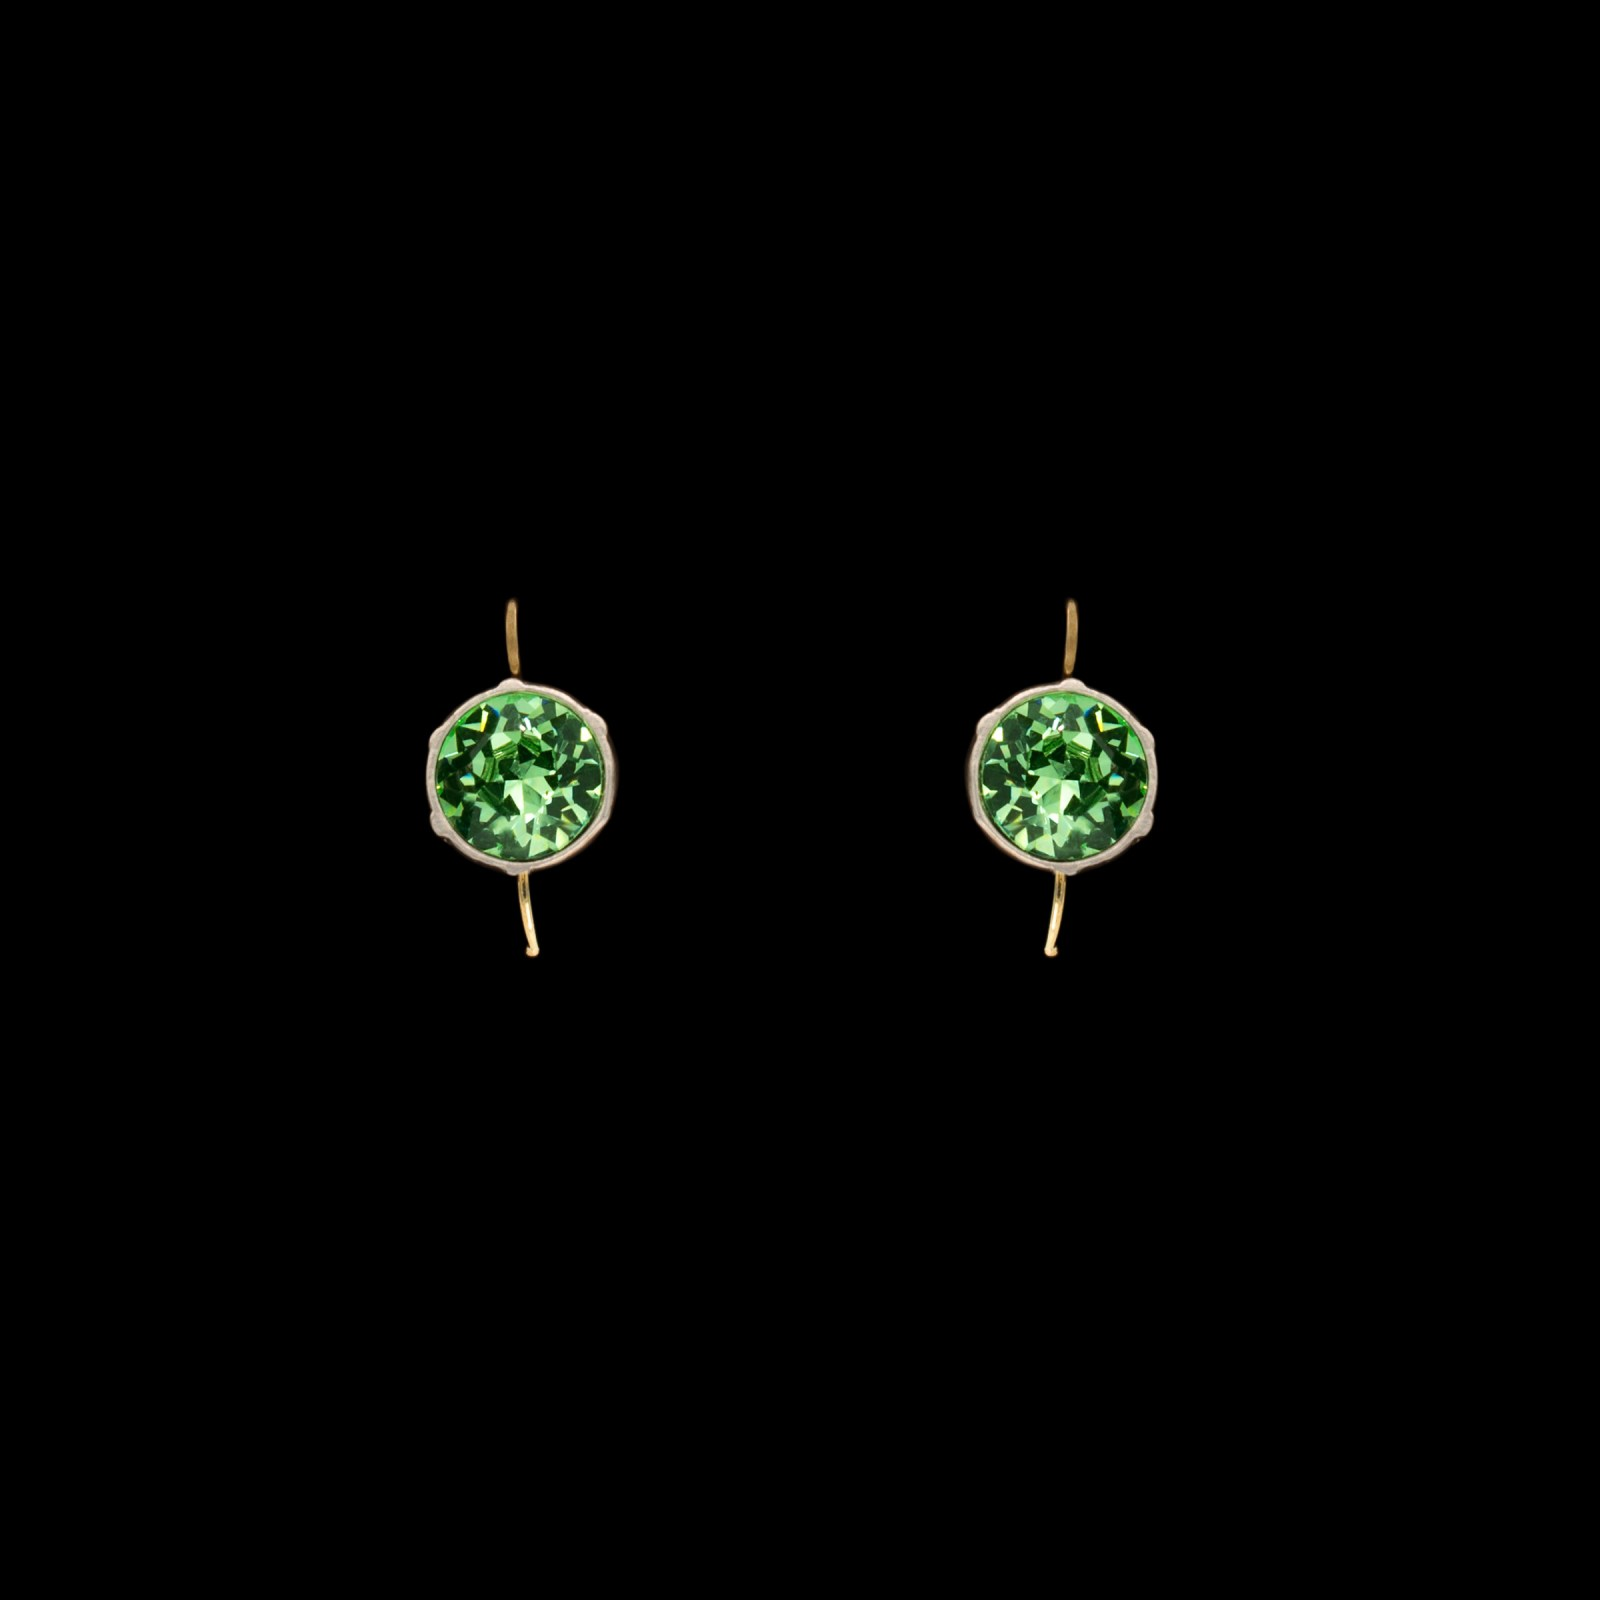 Revival Paste 2ct peridot paste headlight earrings by jeweler Roy Rover, 14K wires